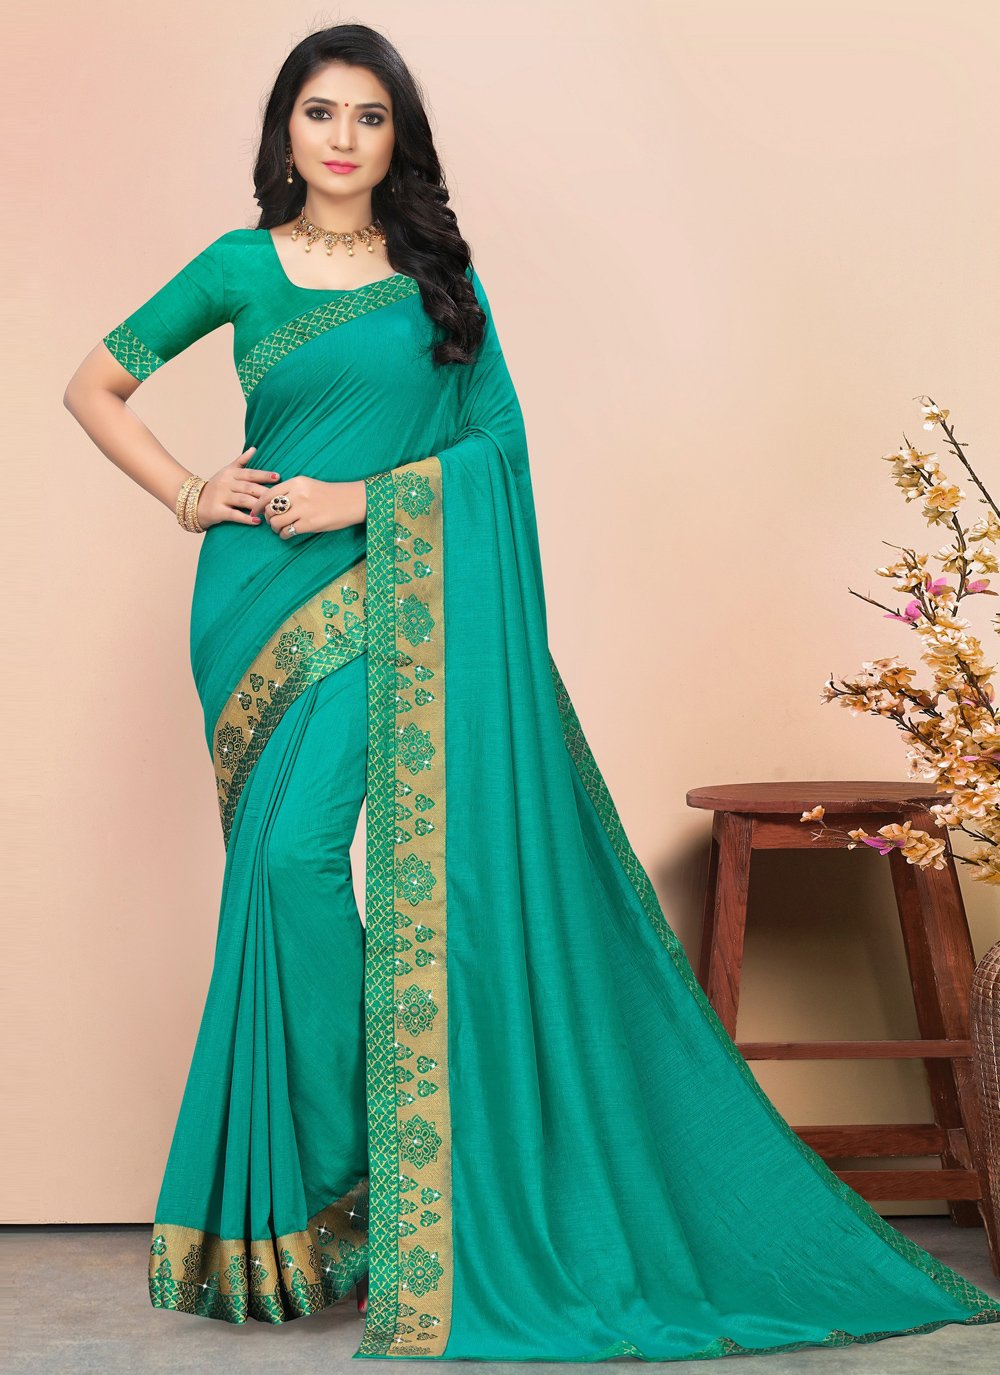 Lace Silk Trendy Saree in Teal